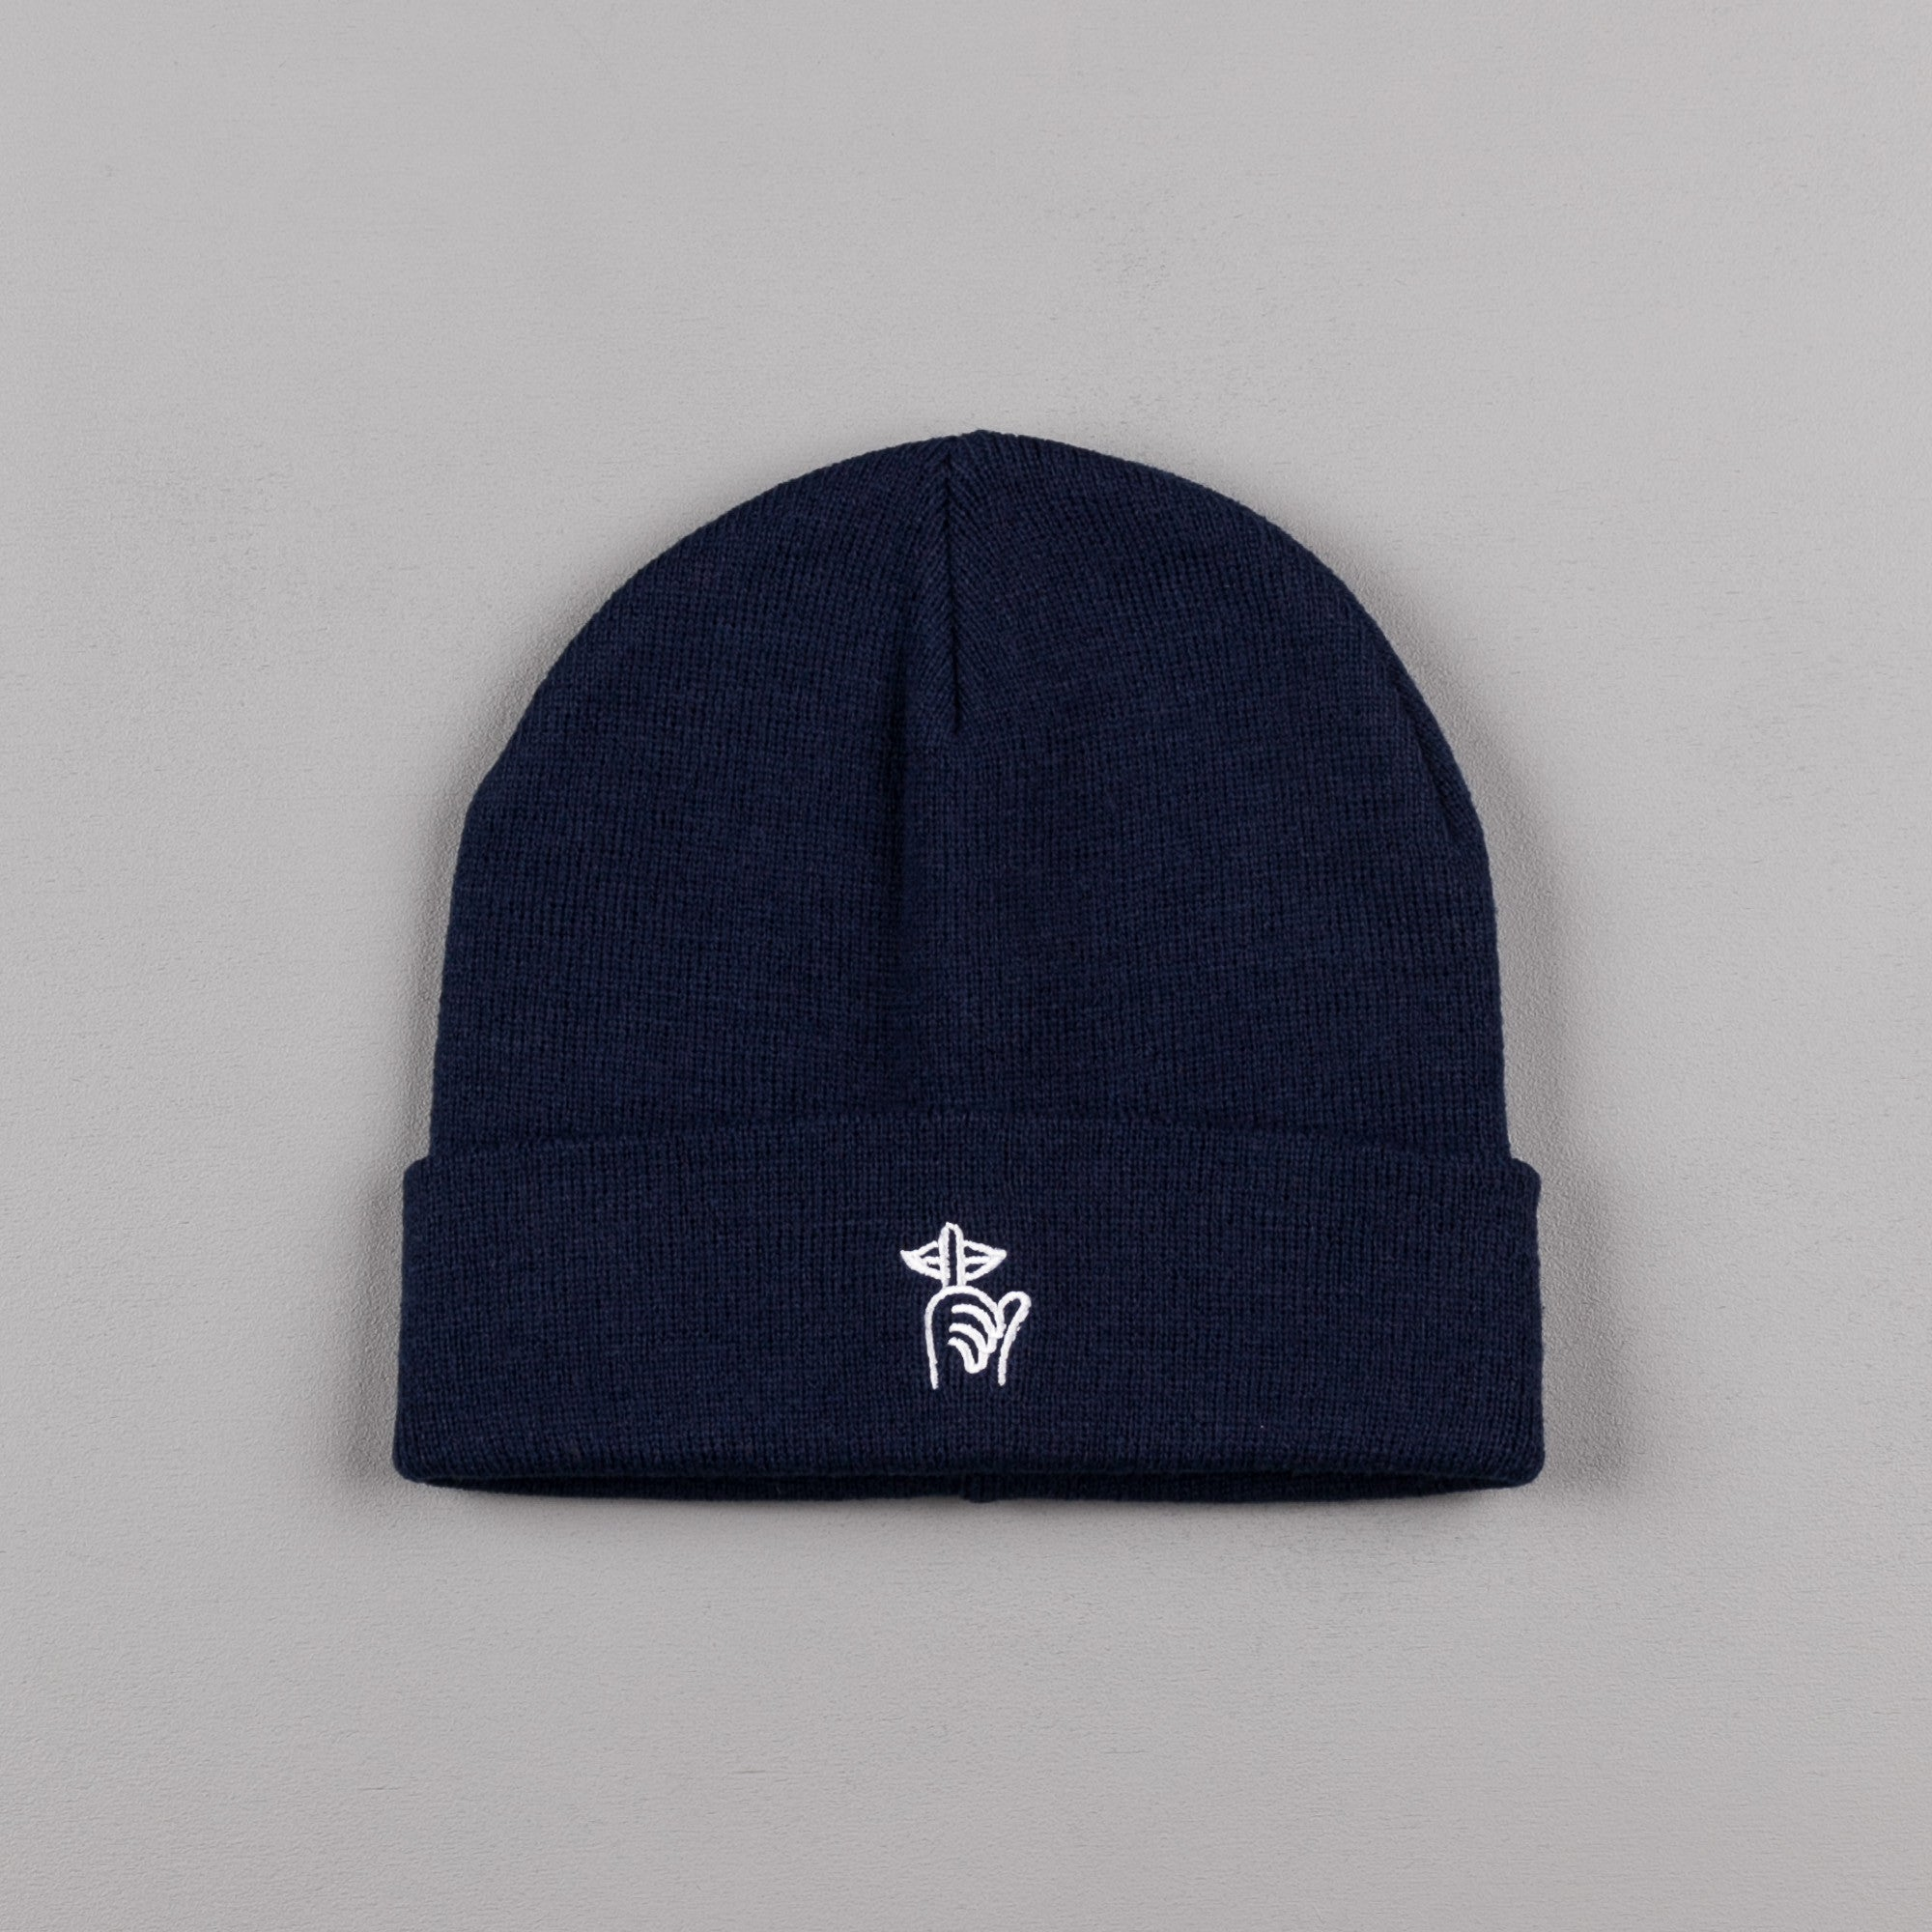 The Quiet Life Shhh Beanie - Navy